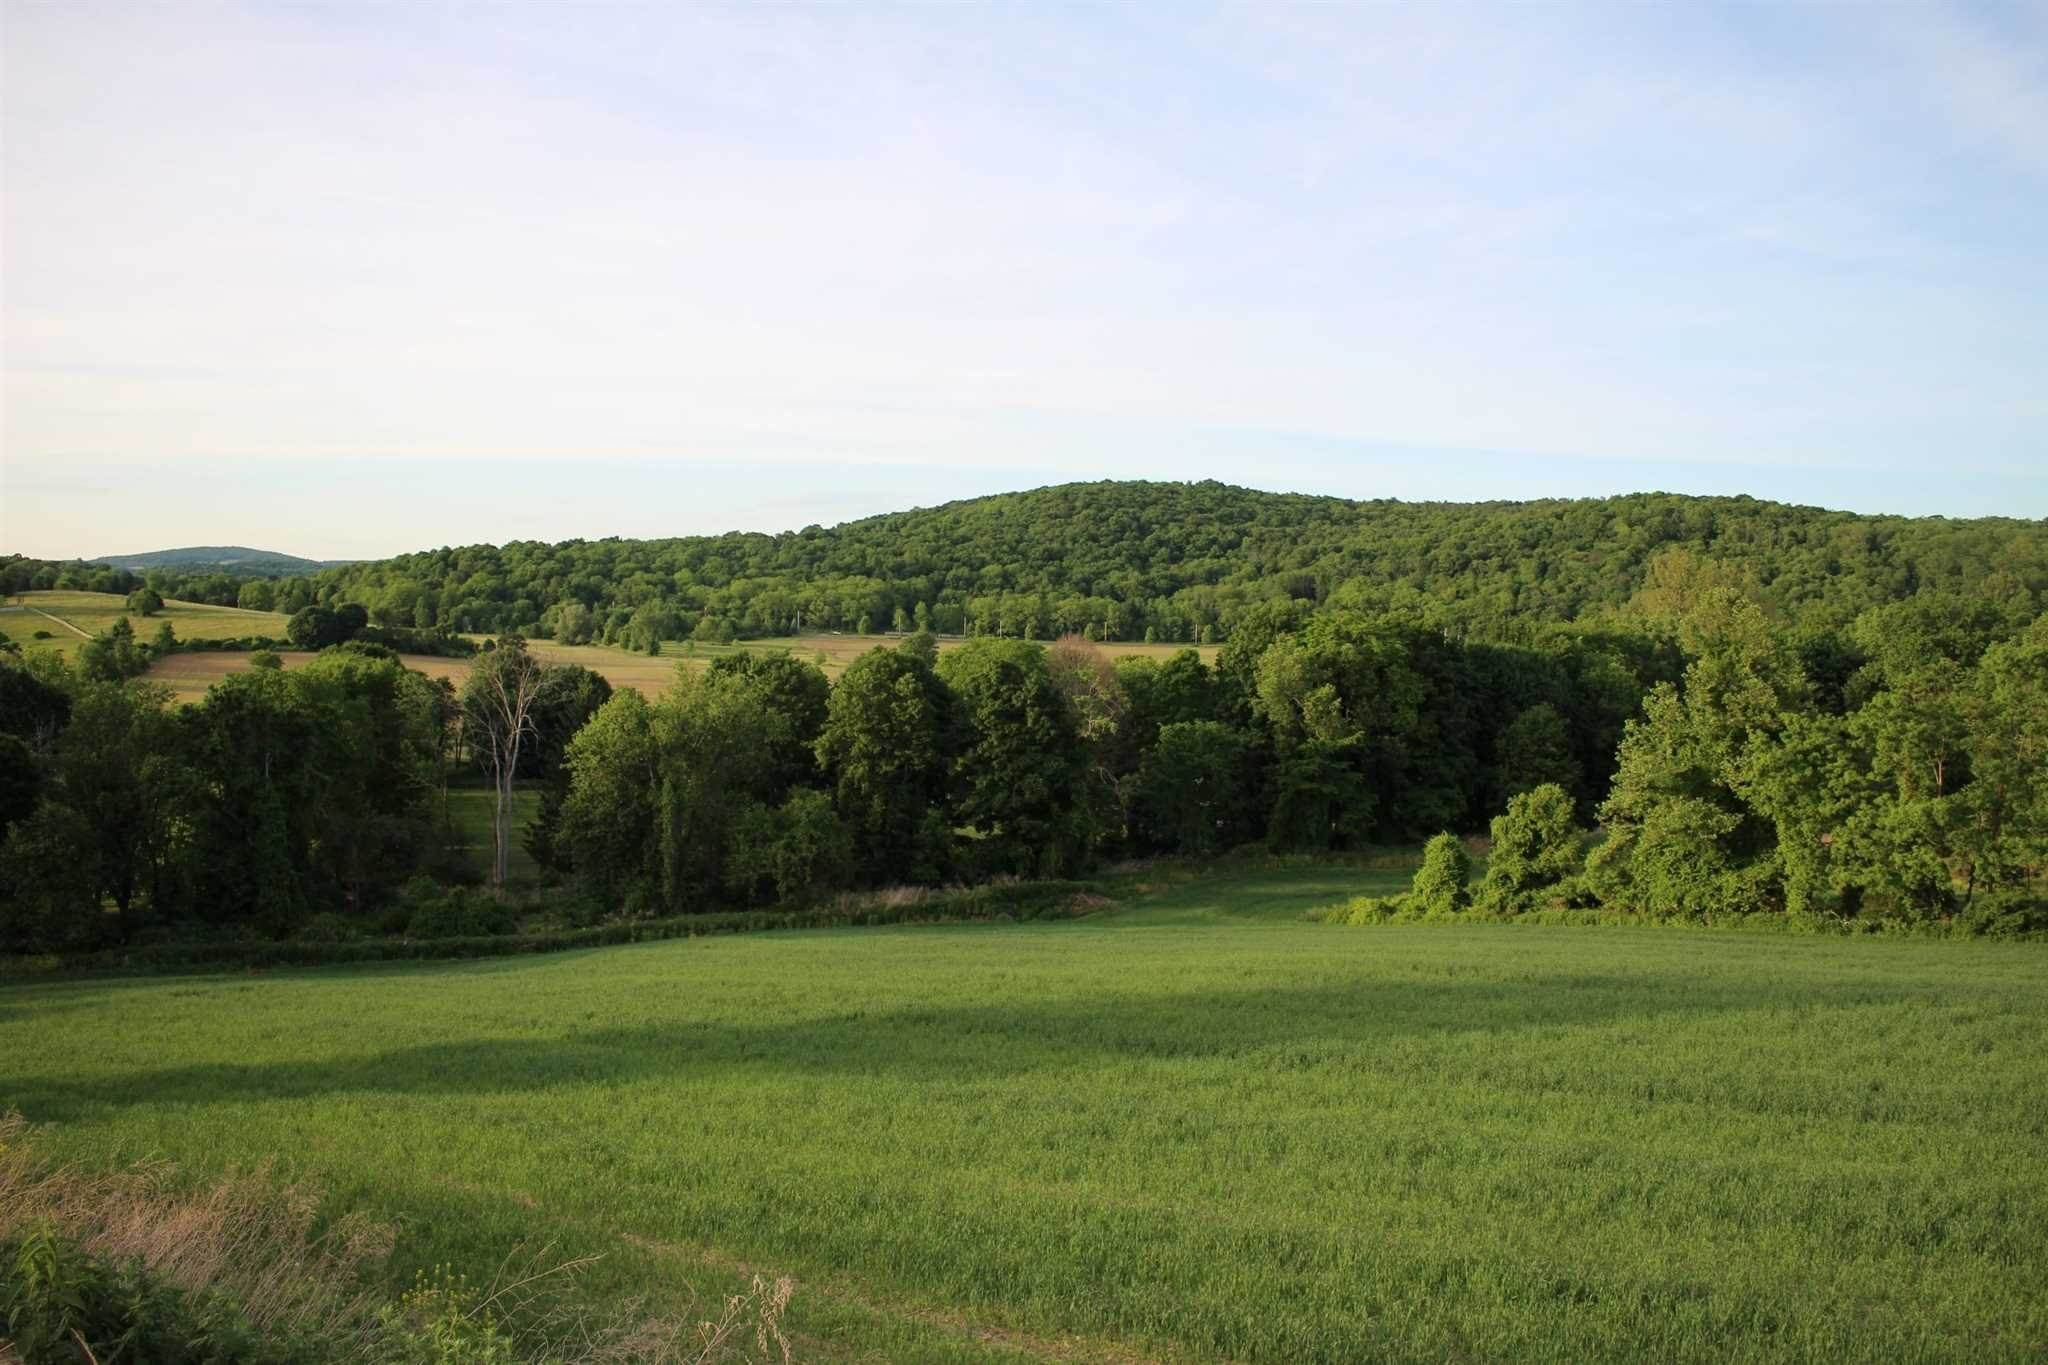 Land for Sale at 390 CARPENTER HILL ROAD Pine Plains, New York 12567 United States